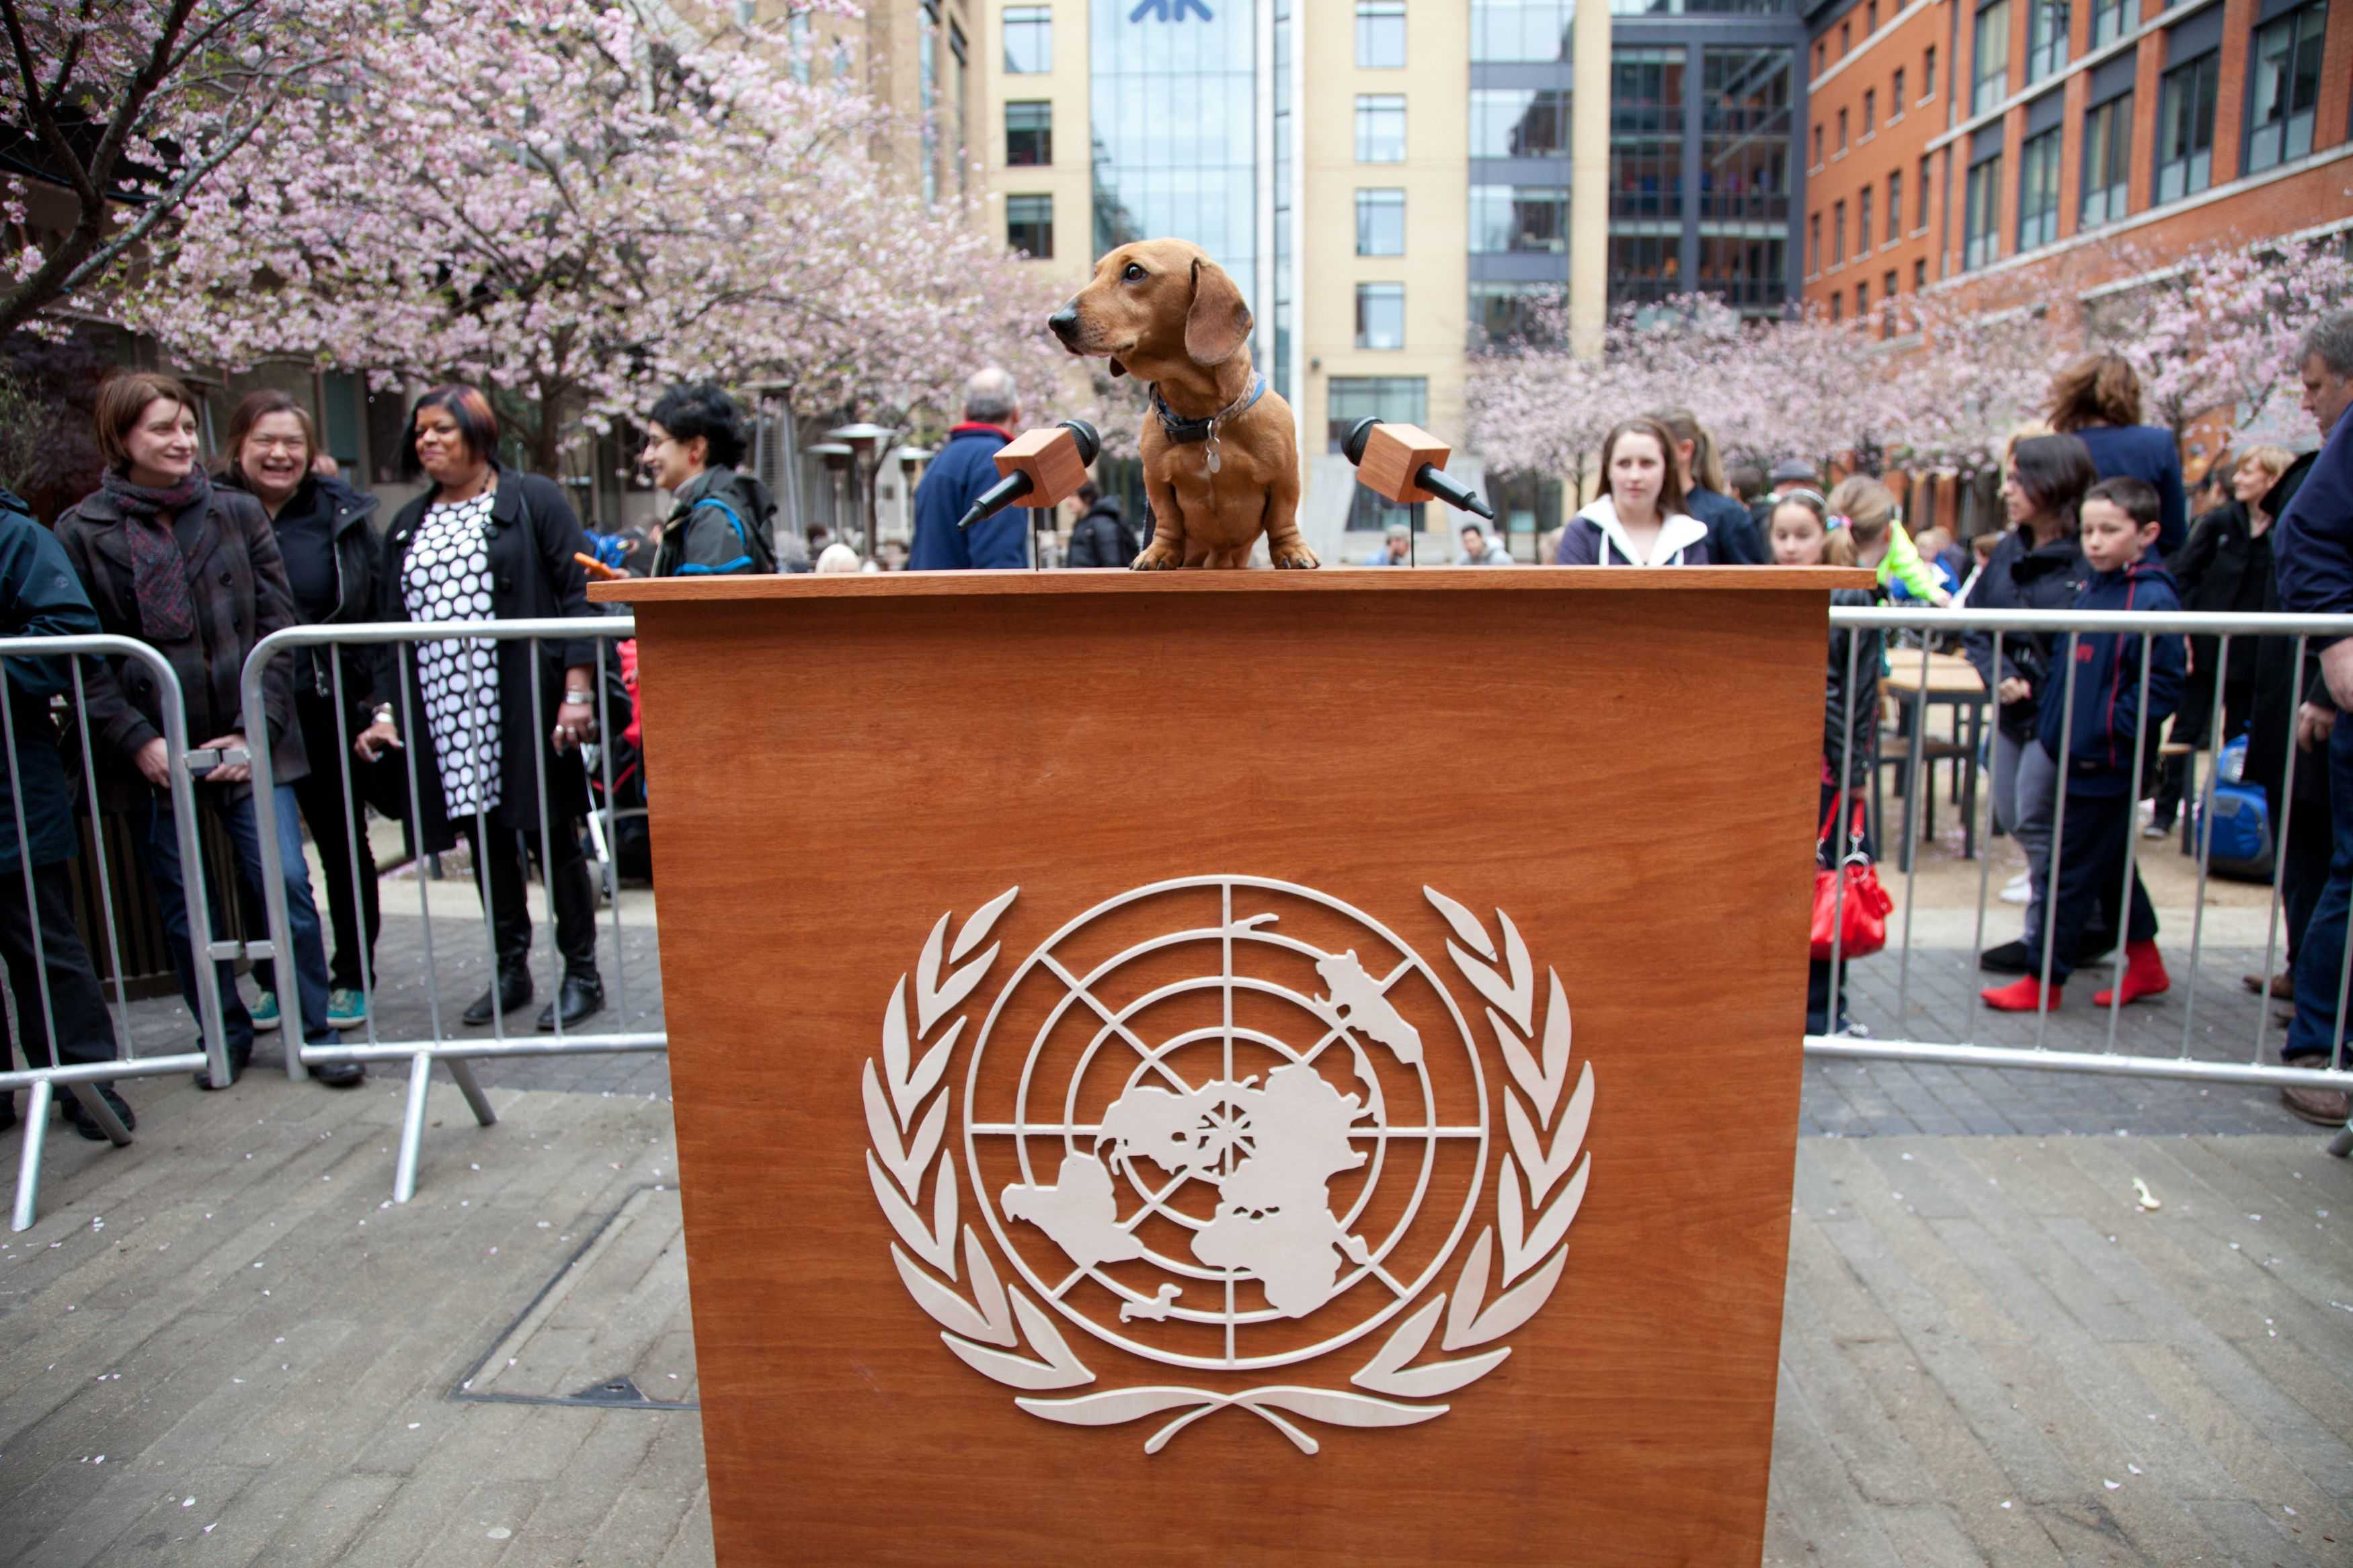 UN rights body opens with calls for international action – doggie style – with the North American premiere of Dachshund UN